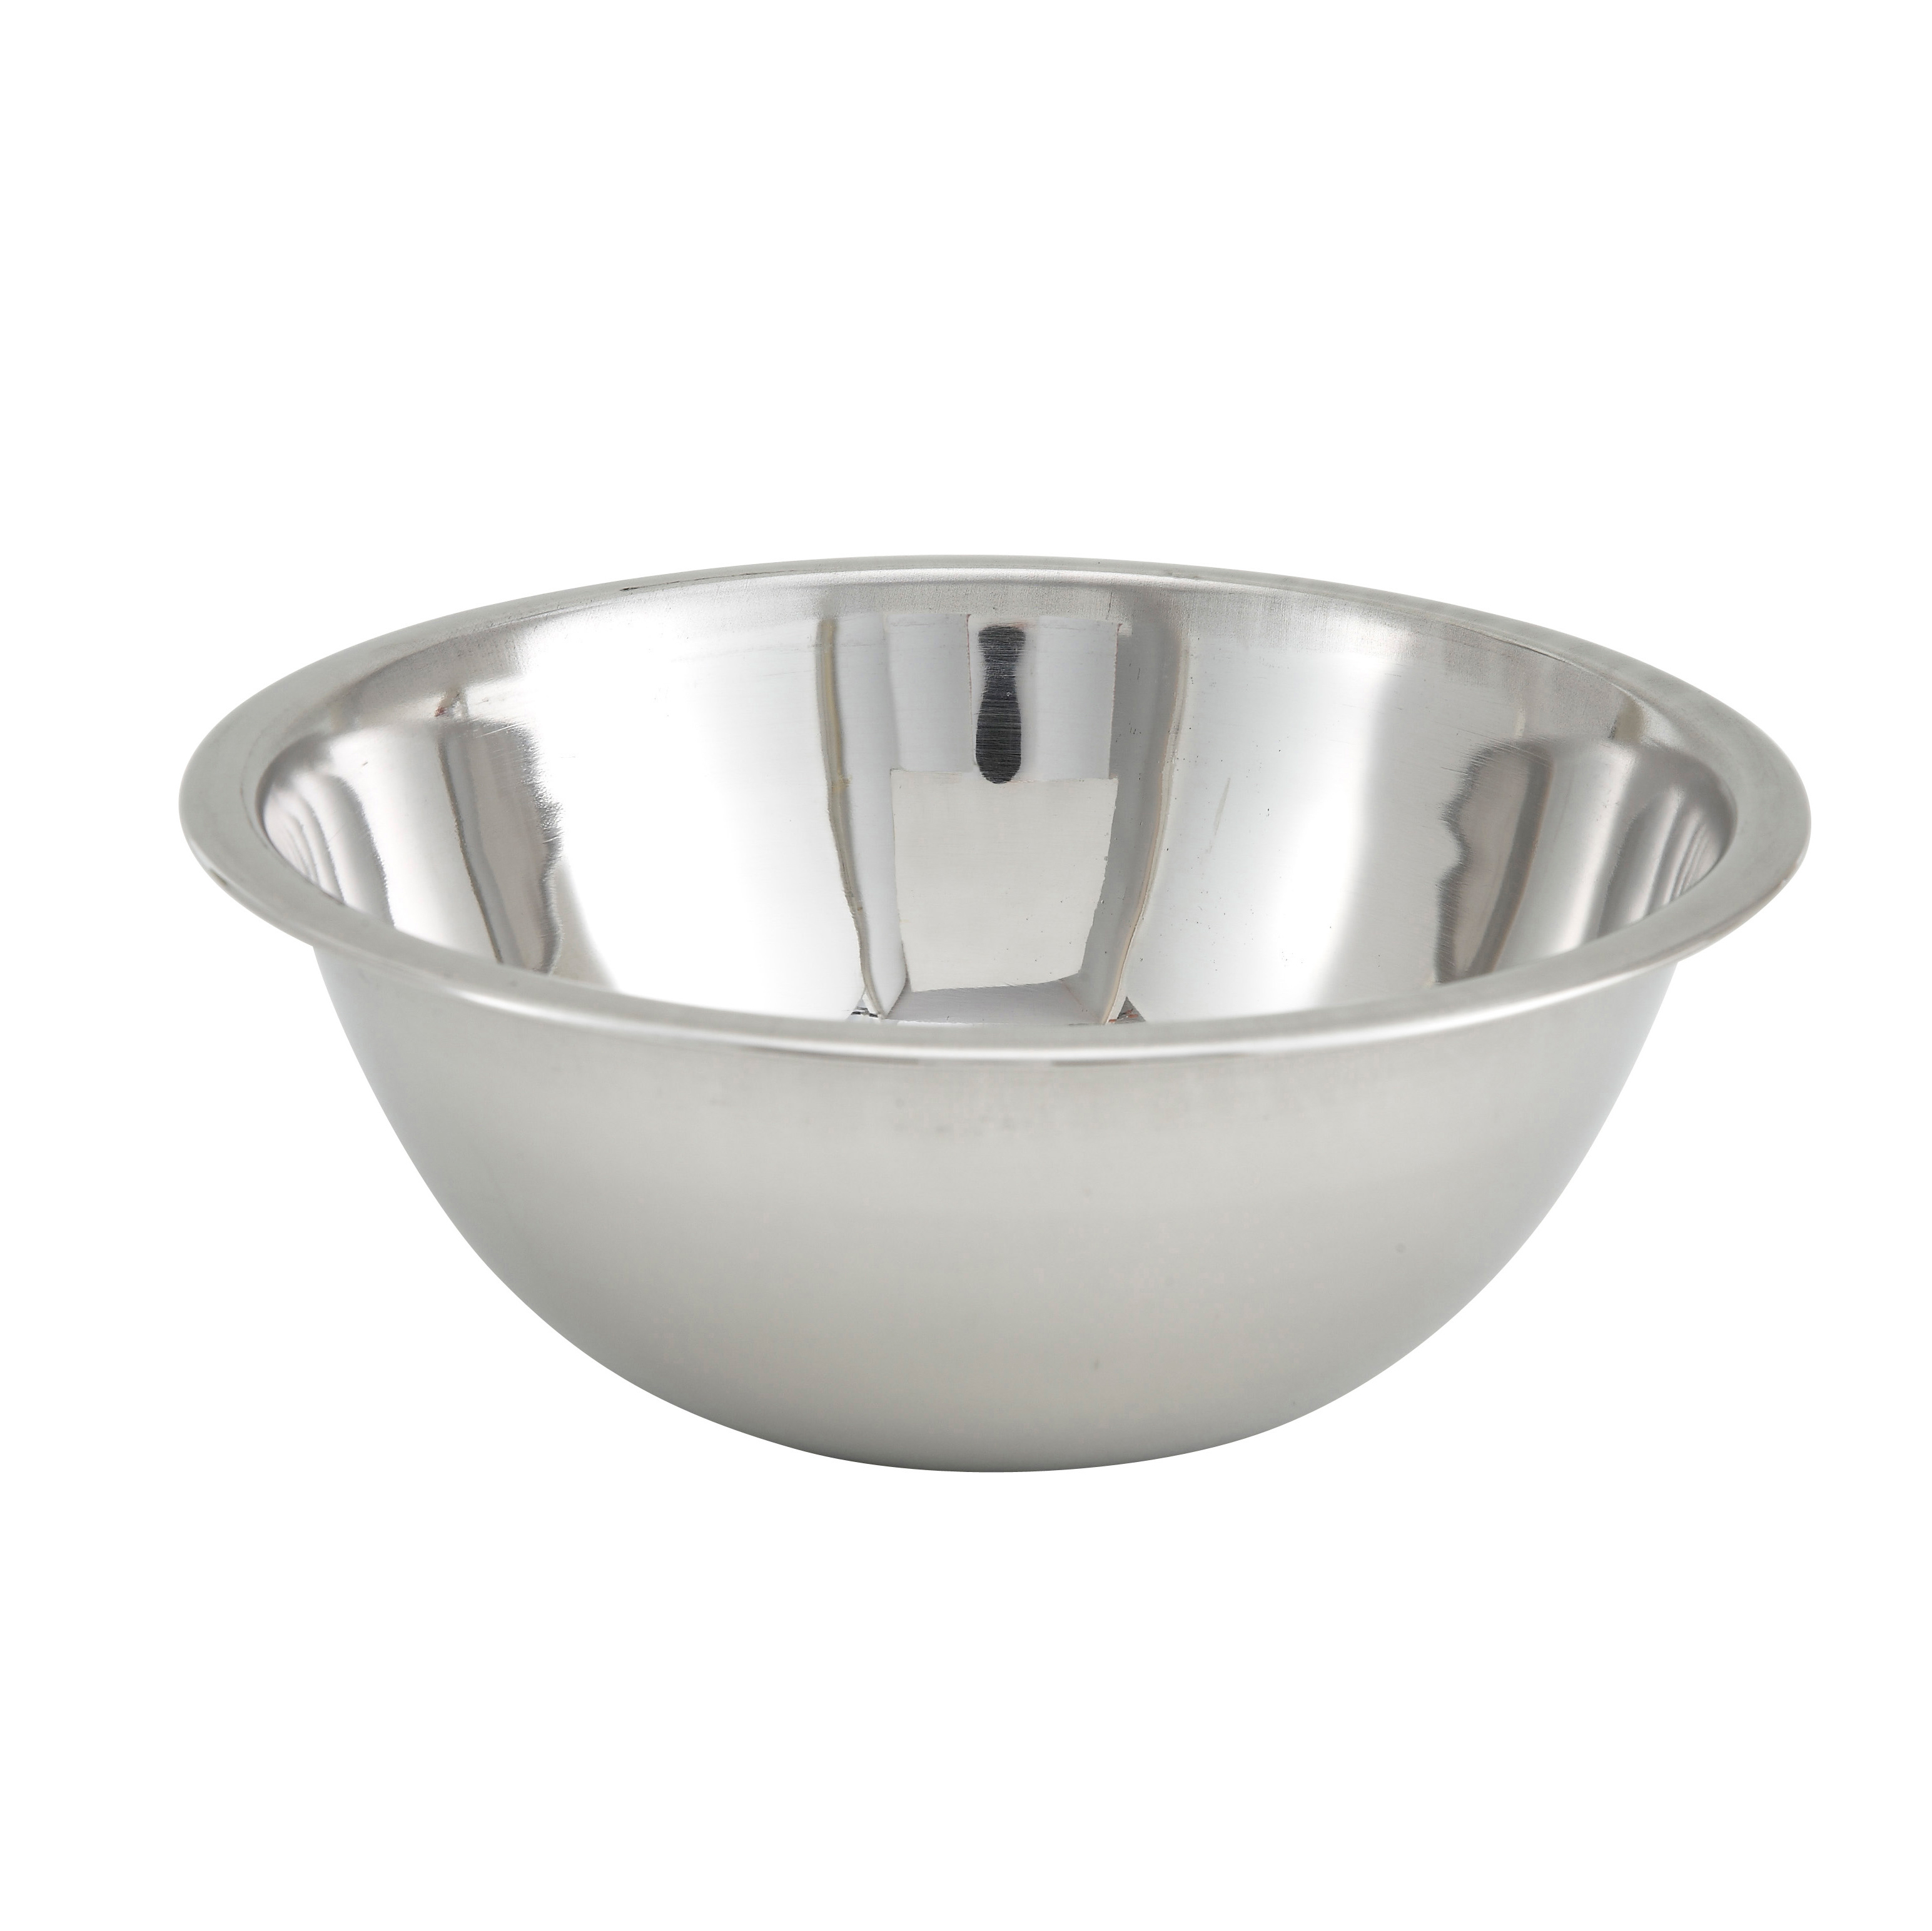 Winco MXBT-300Q mixing bowl, metal